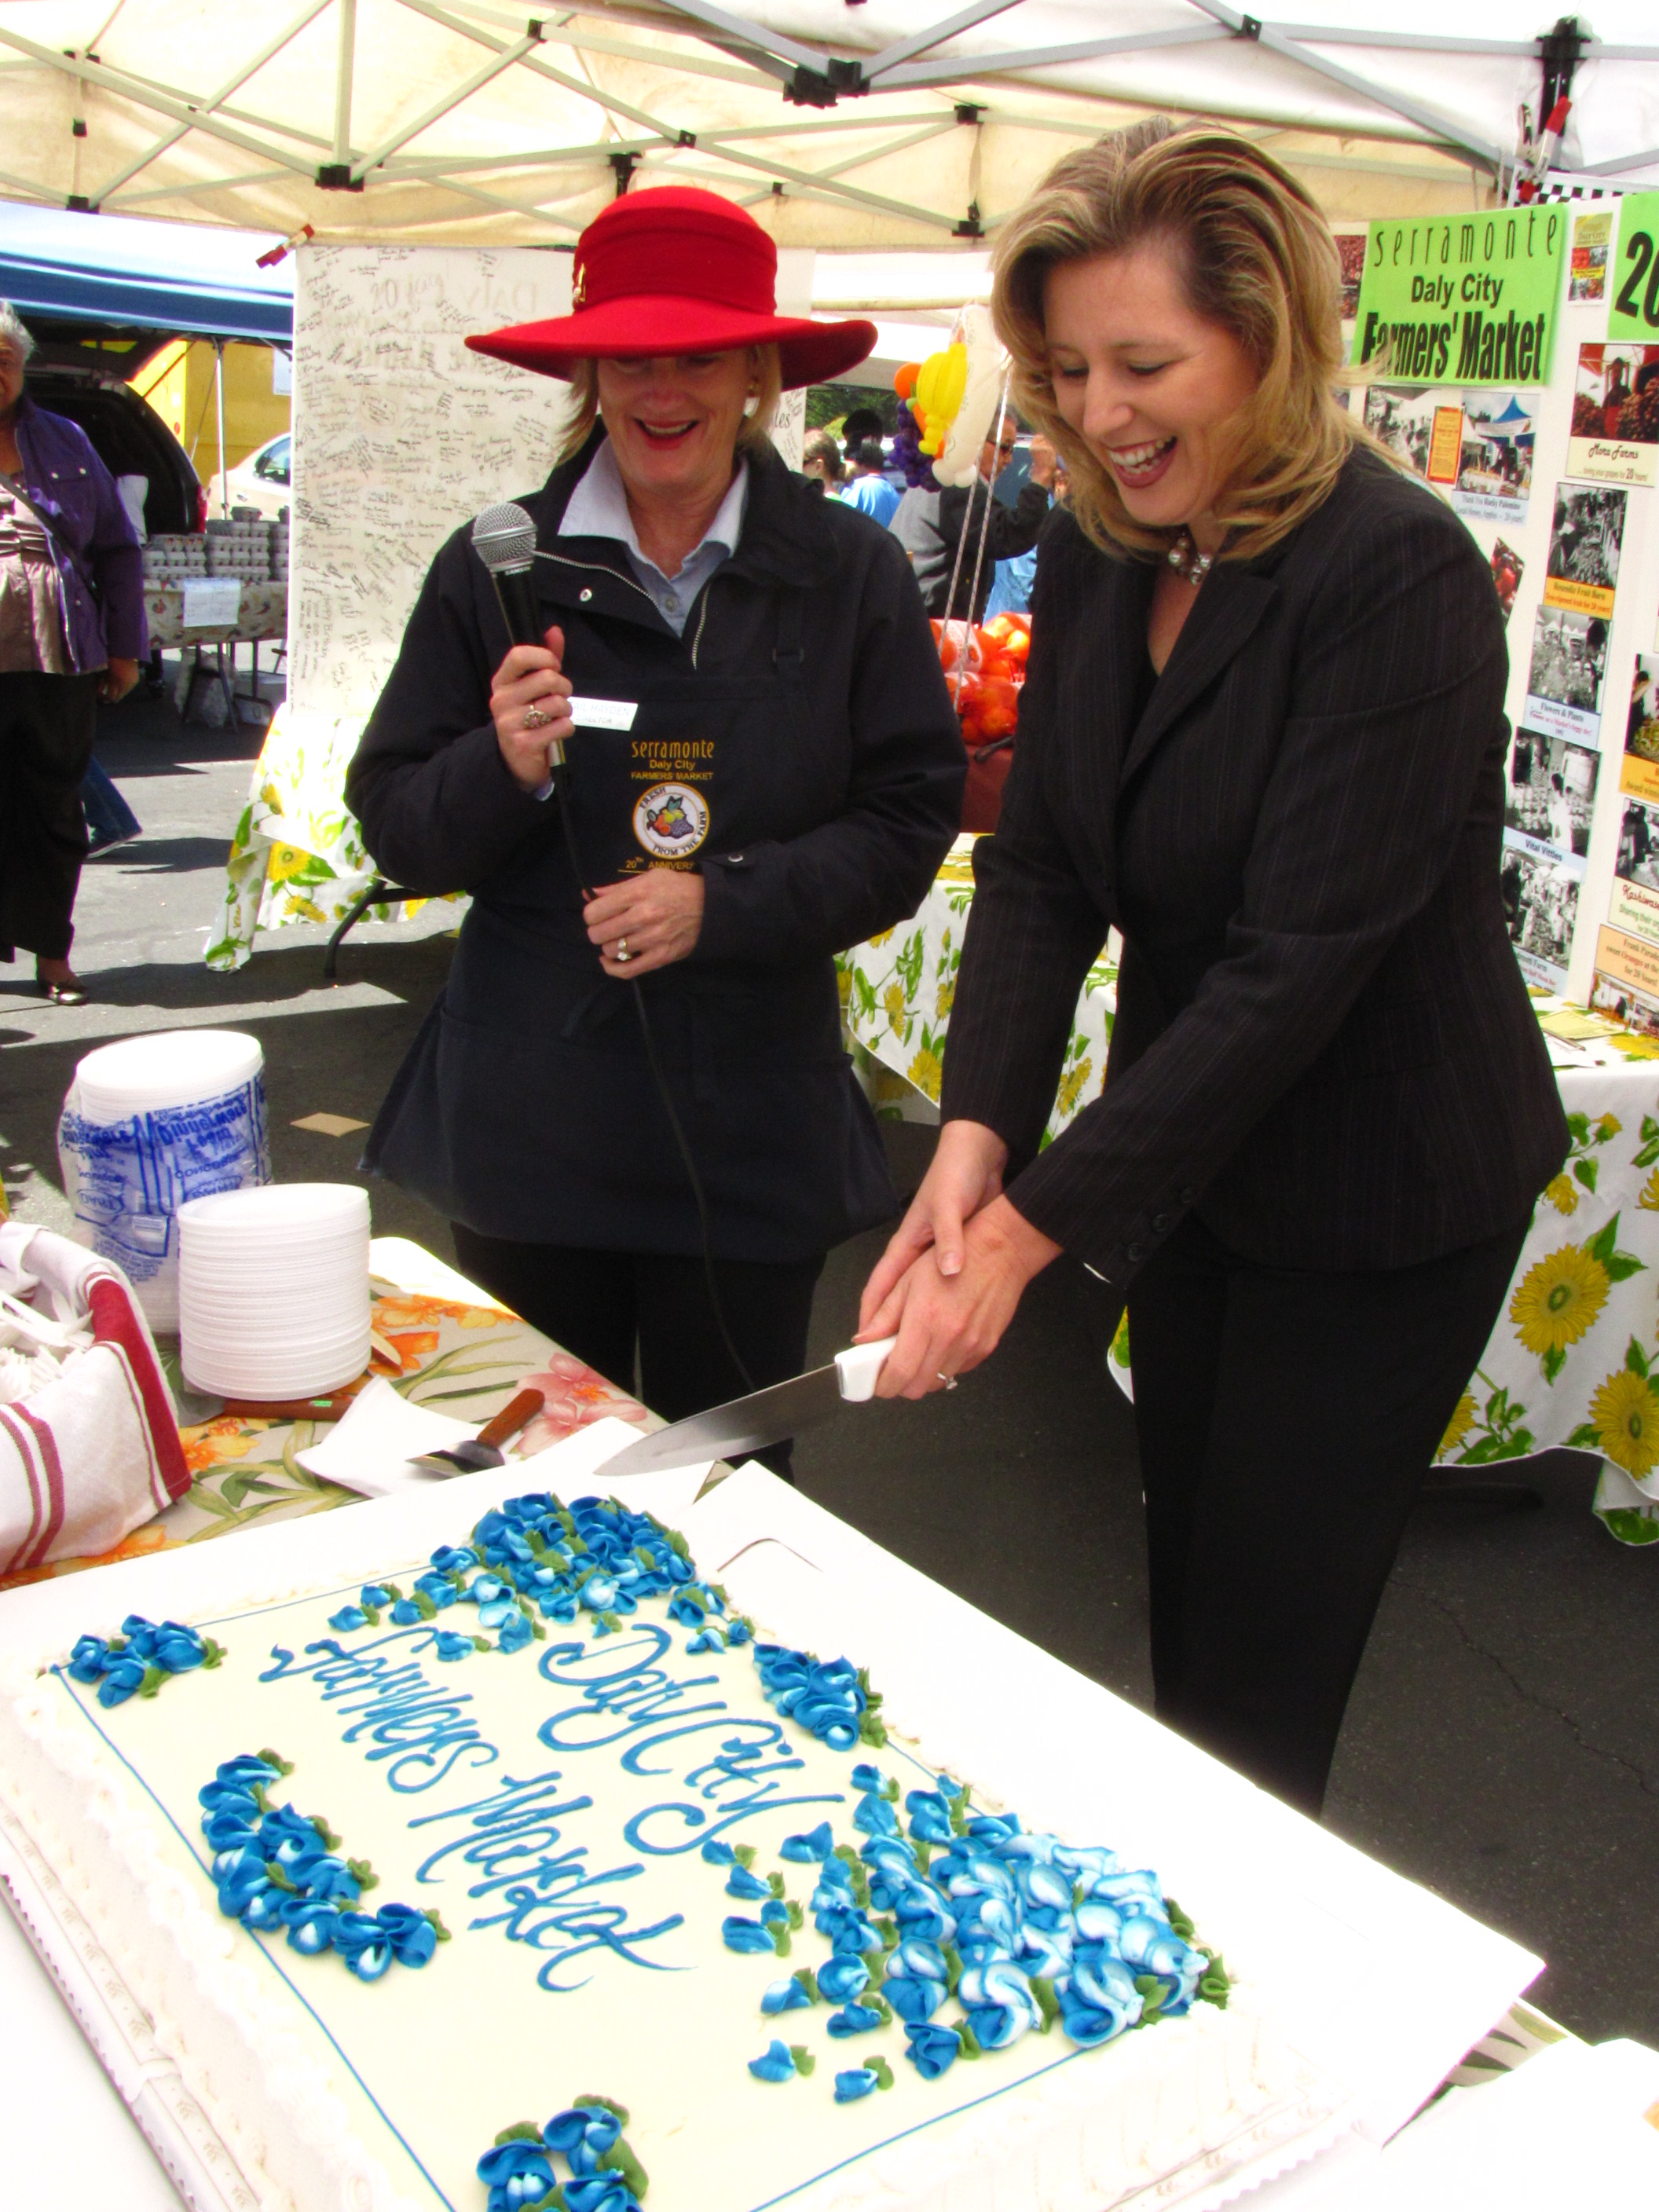 Daly City 20th Anniversary 2011 Cake cutting with Jennifer Duarte and Gail Hayden.JPG